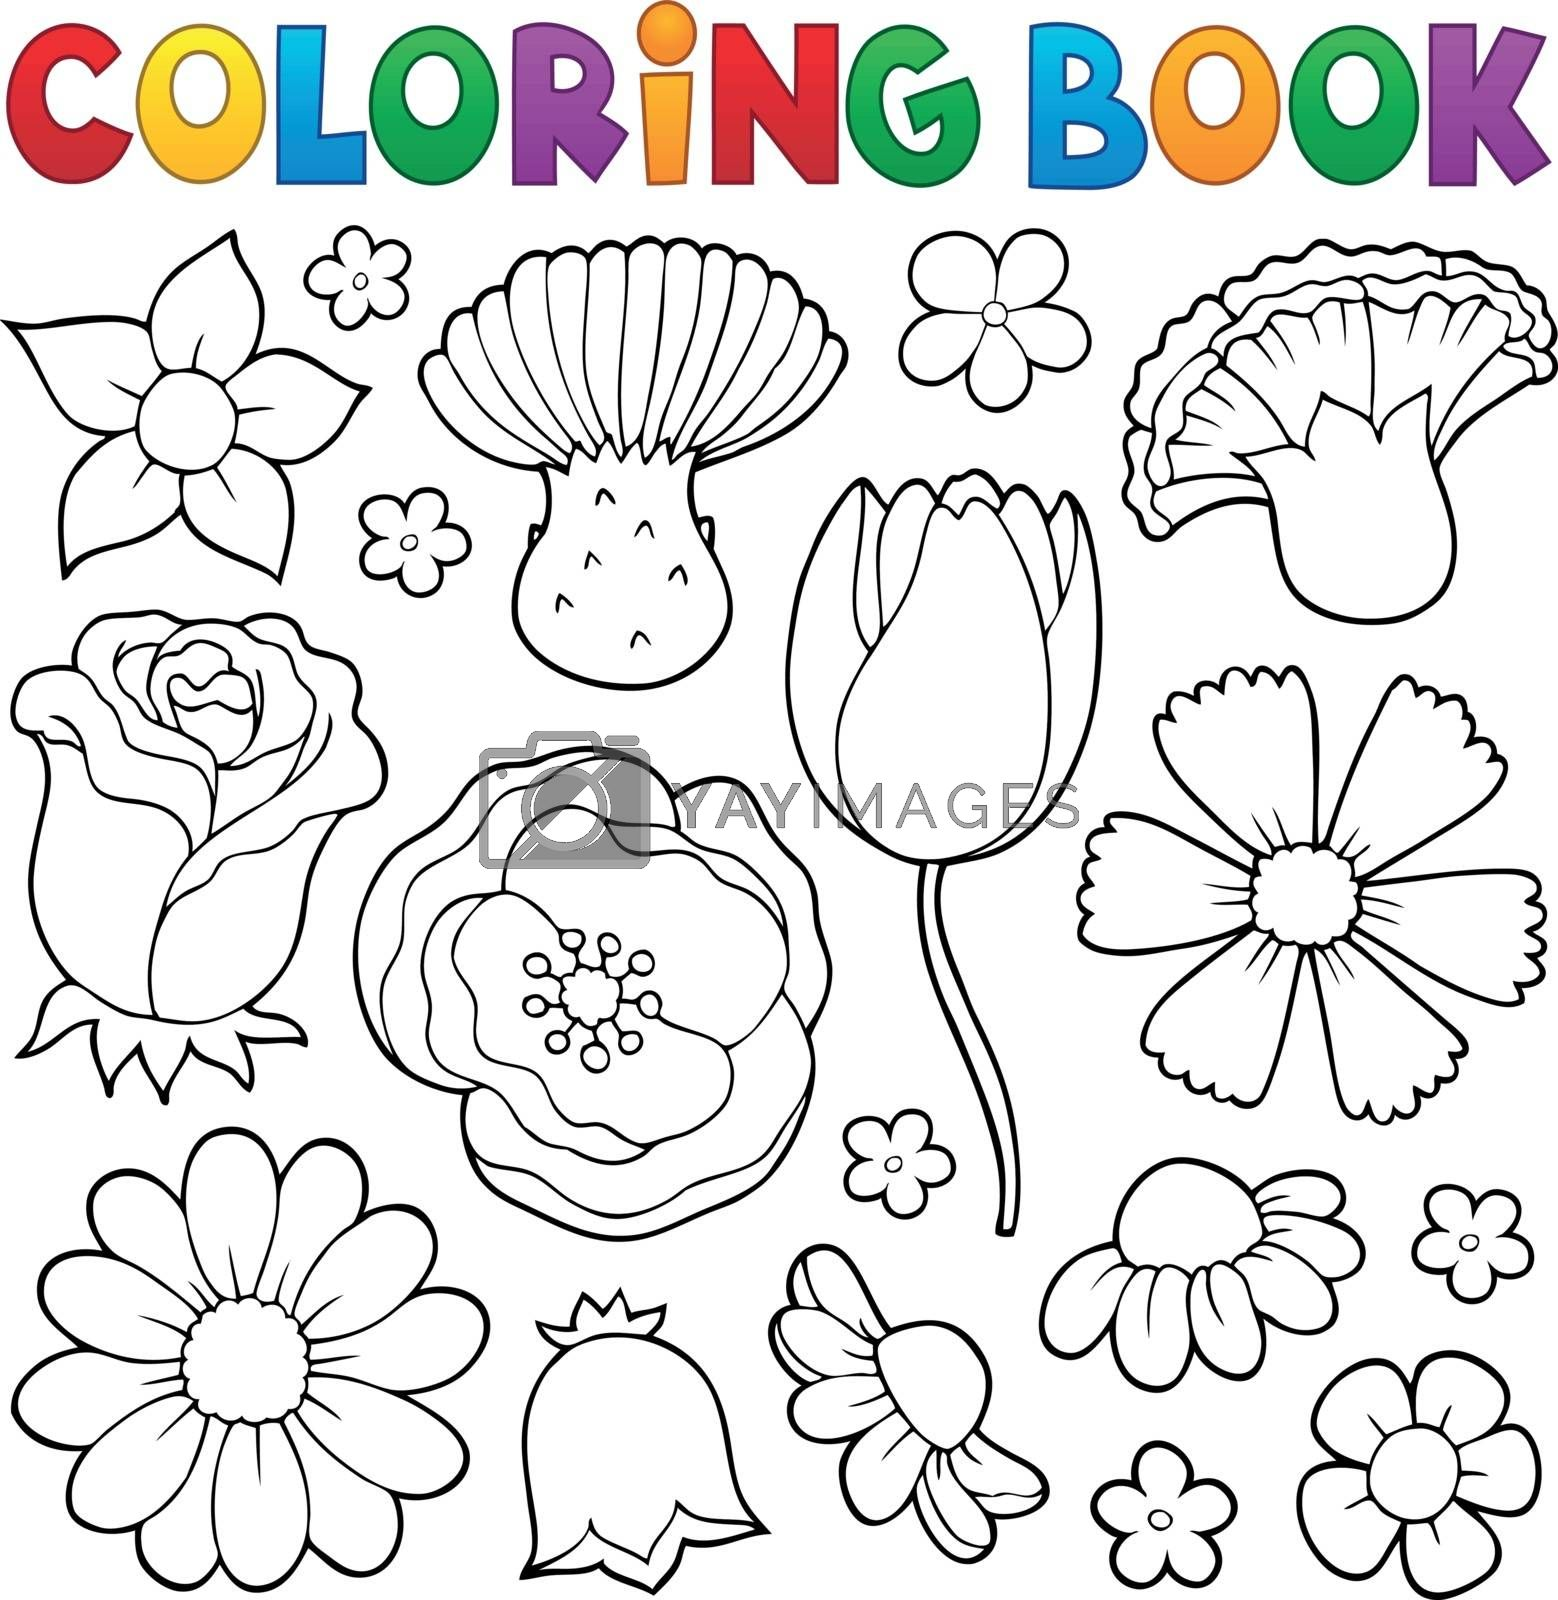 Coloring book various flower heads set 1 - eps10 vector illustration.